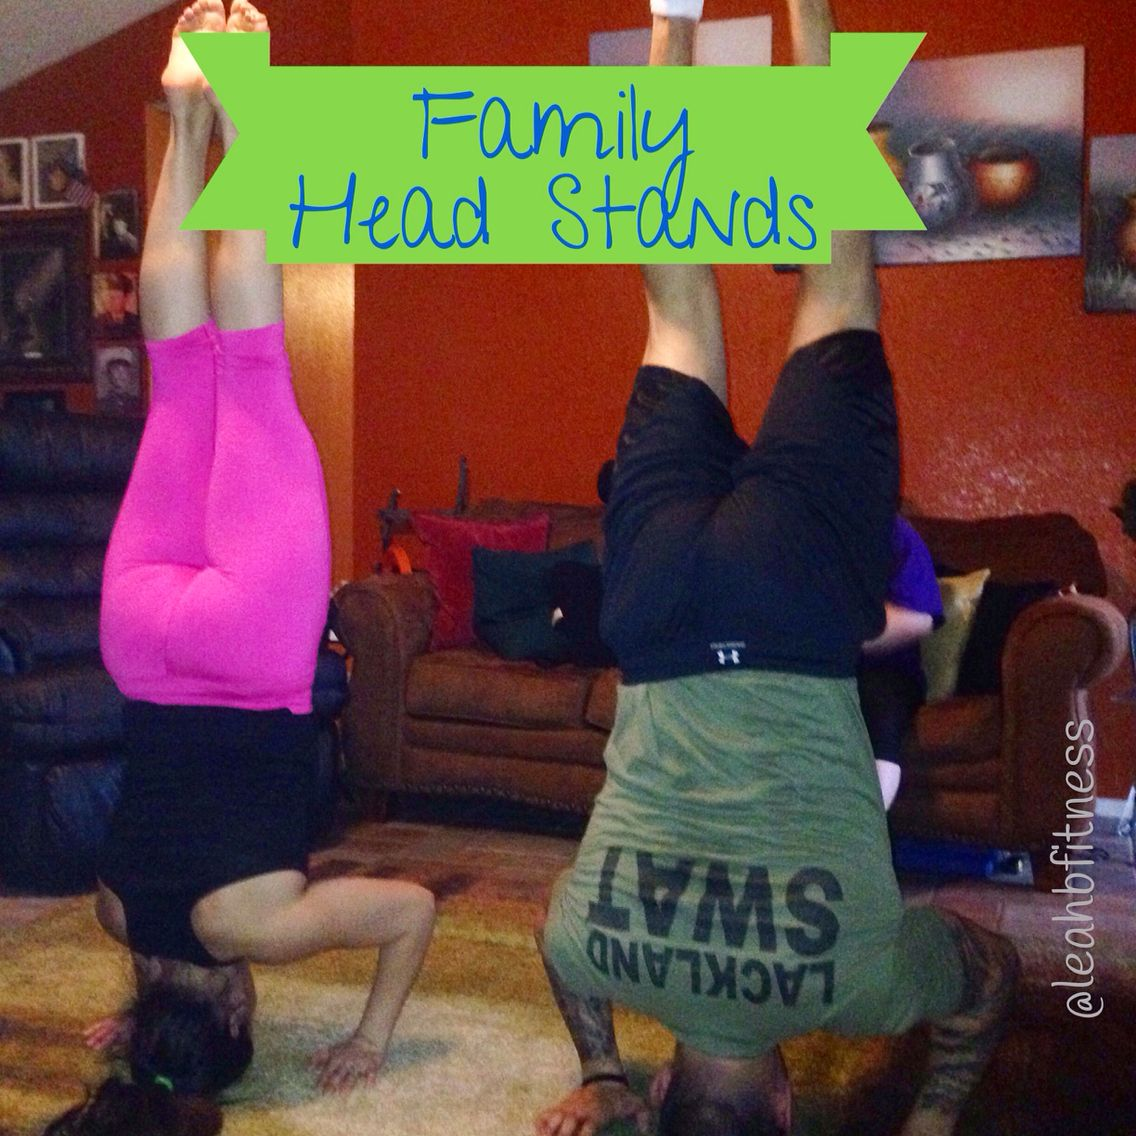 After a little PiYo workout, we had a brother and sister headstand competition.  I love that fitness is a passion that we both share. My brother is into bodybuilding and I love helping people reach their fitness goals.